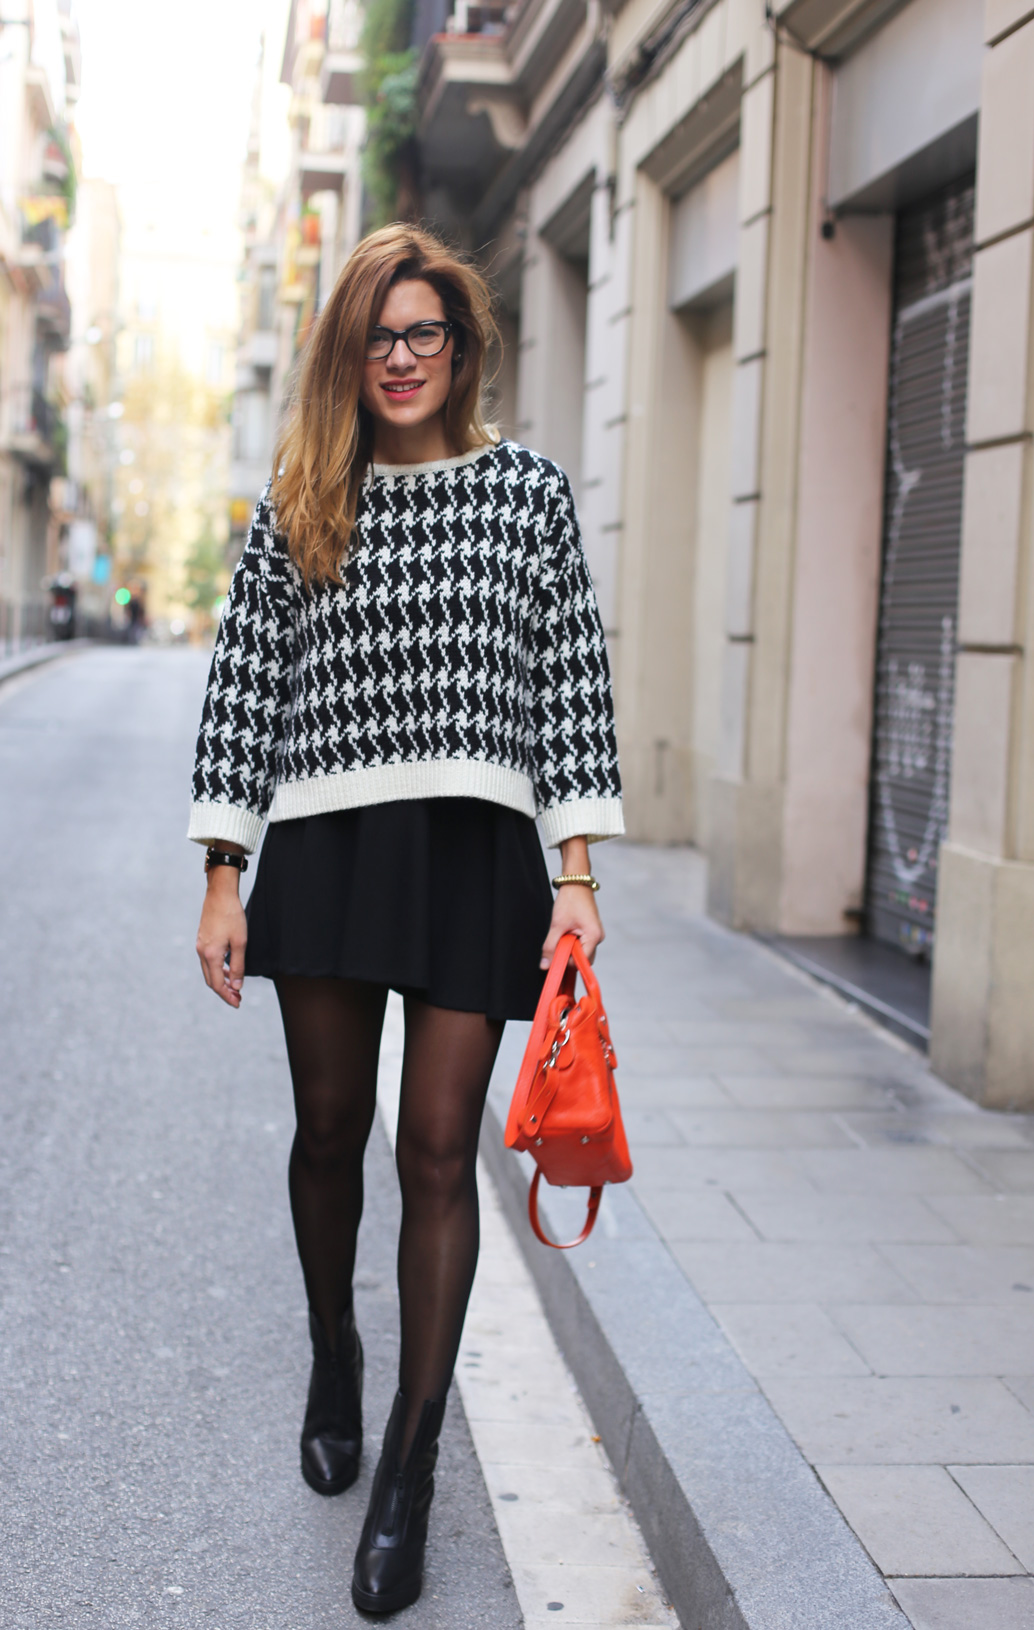 Longcham-bag_Black-and-white-outfit